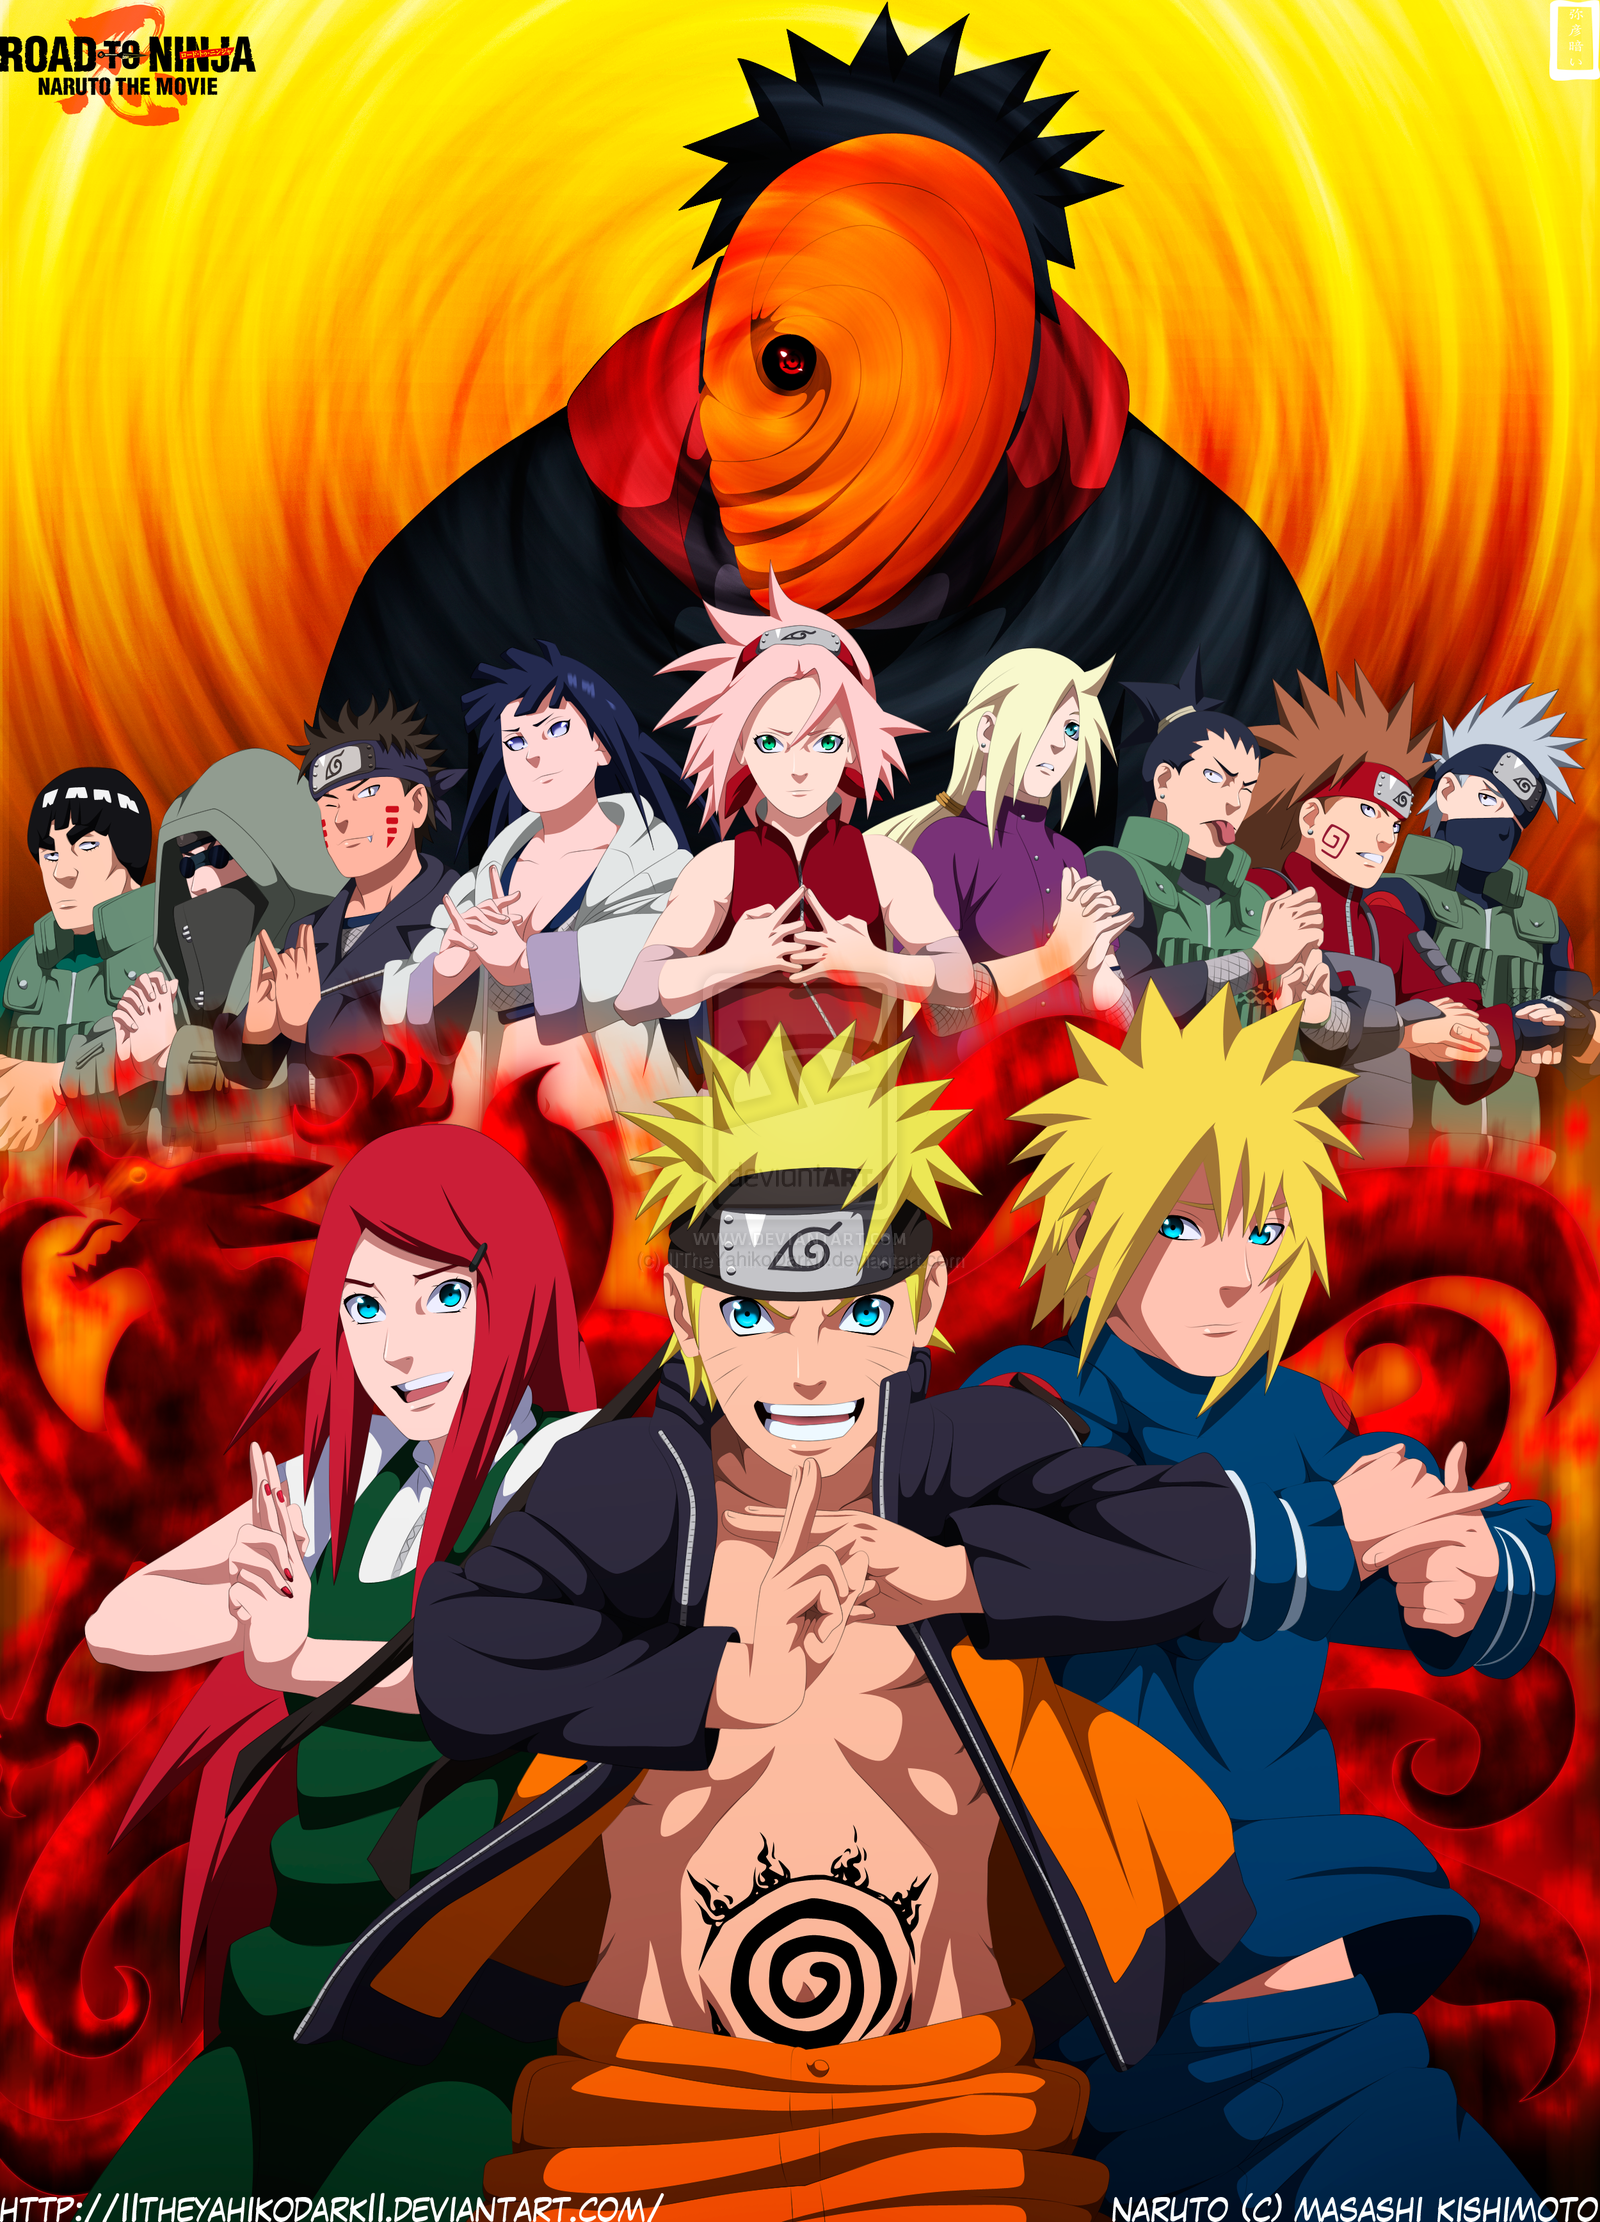 naruto s latest naruto shippuden road to ninja movie has finally